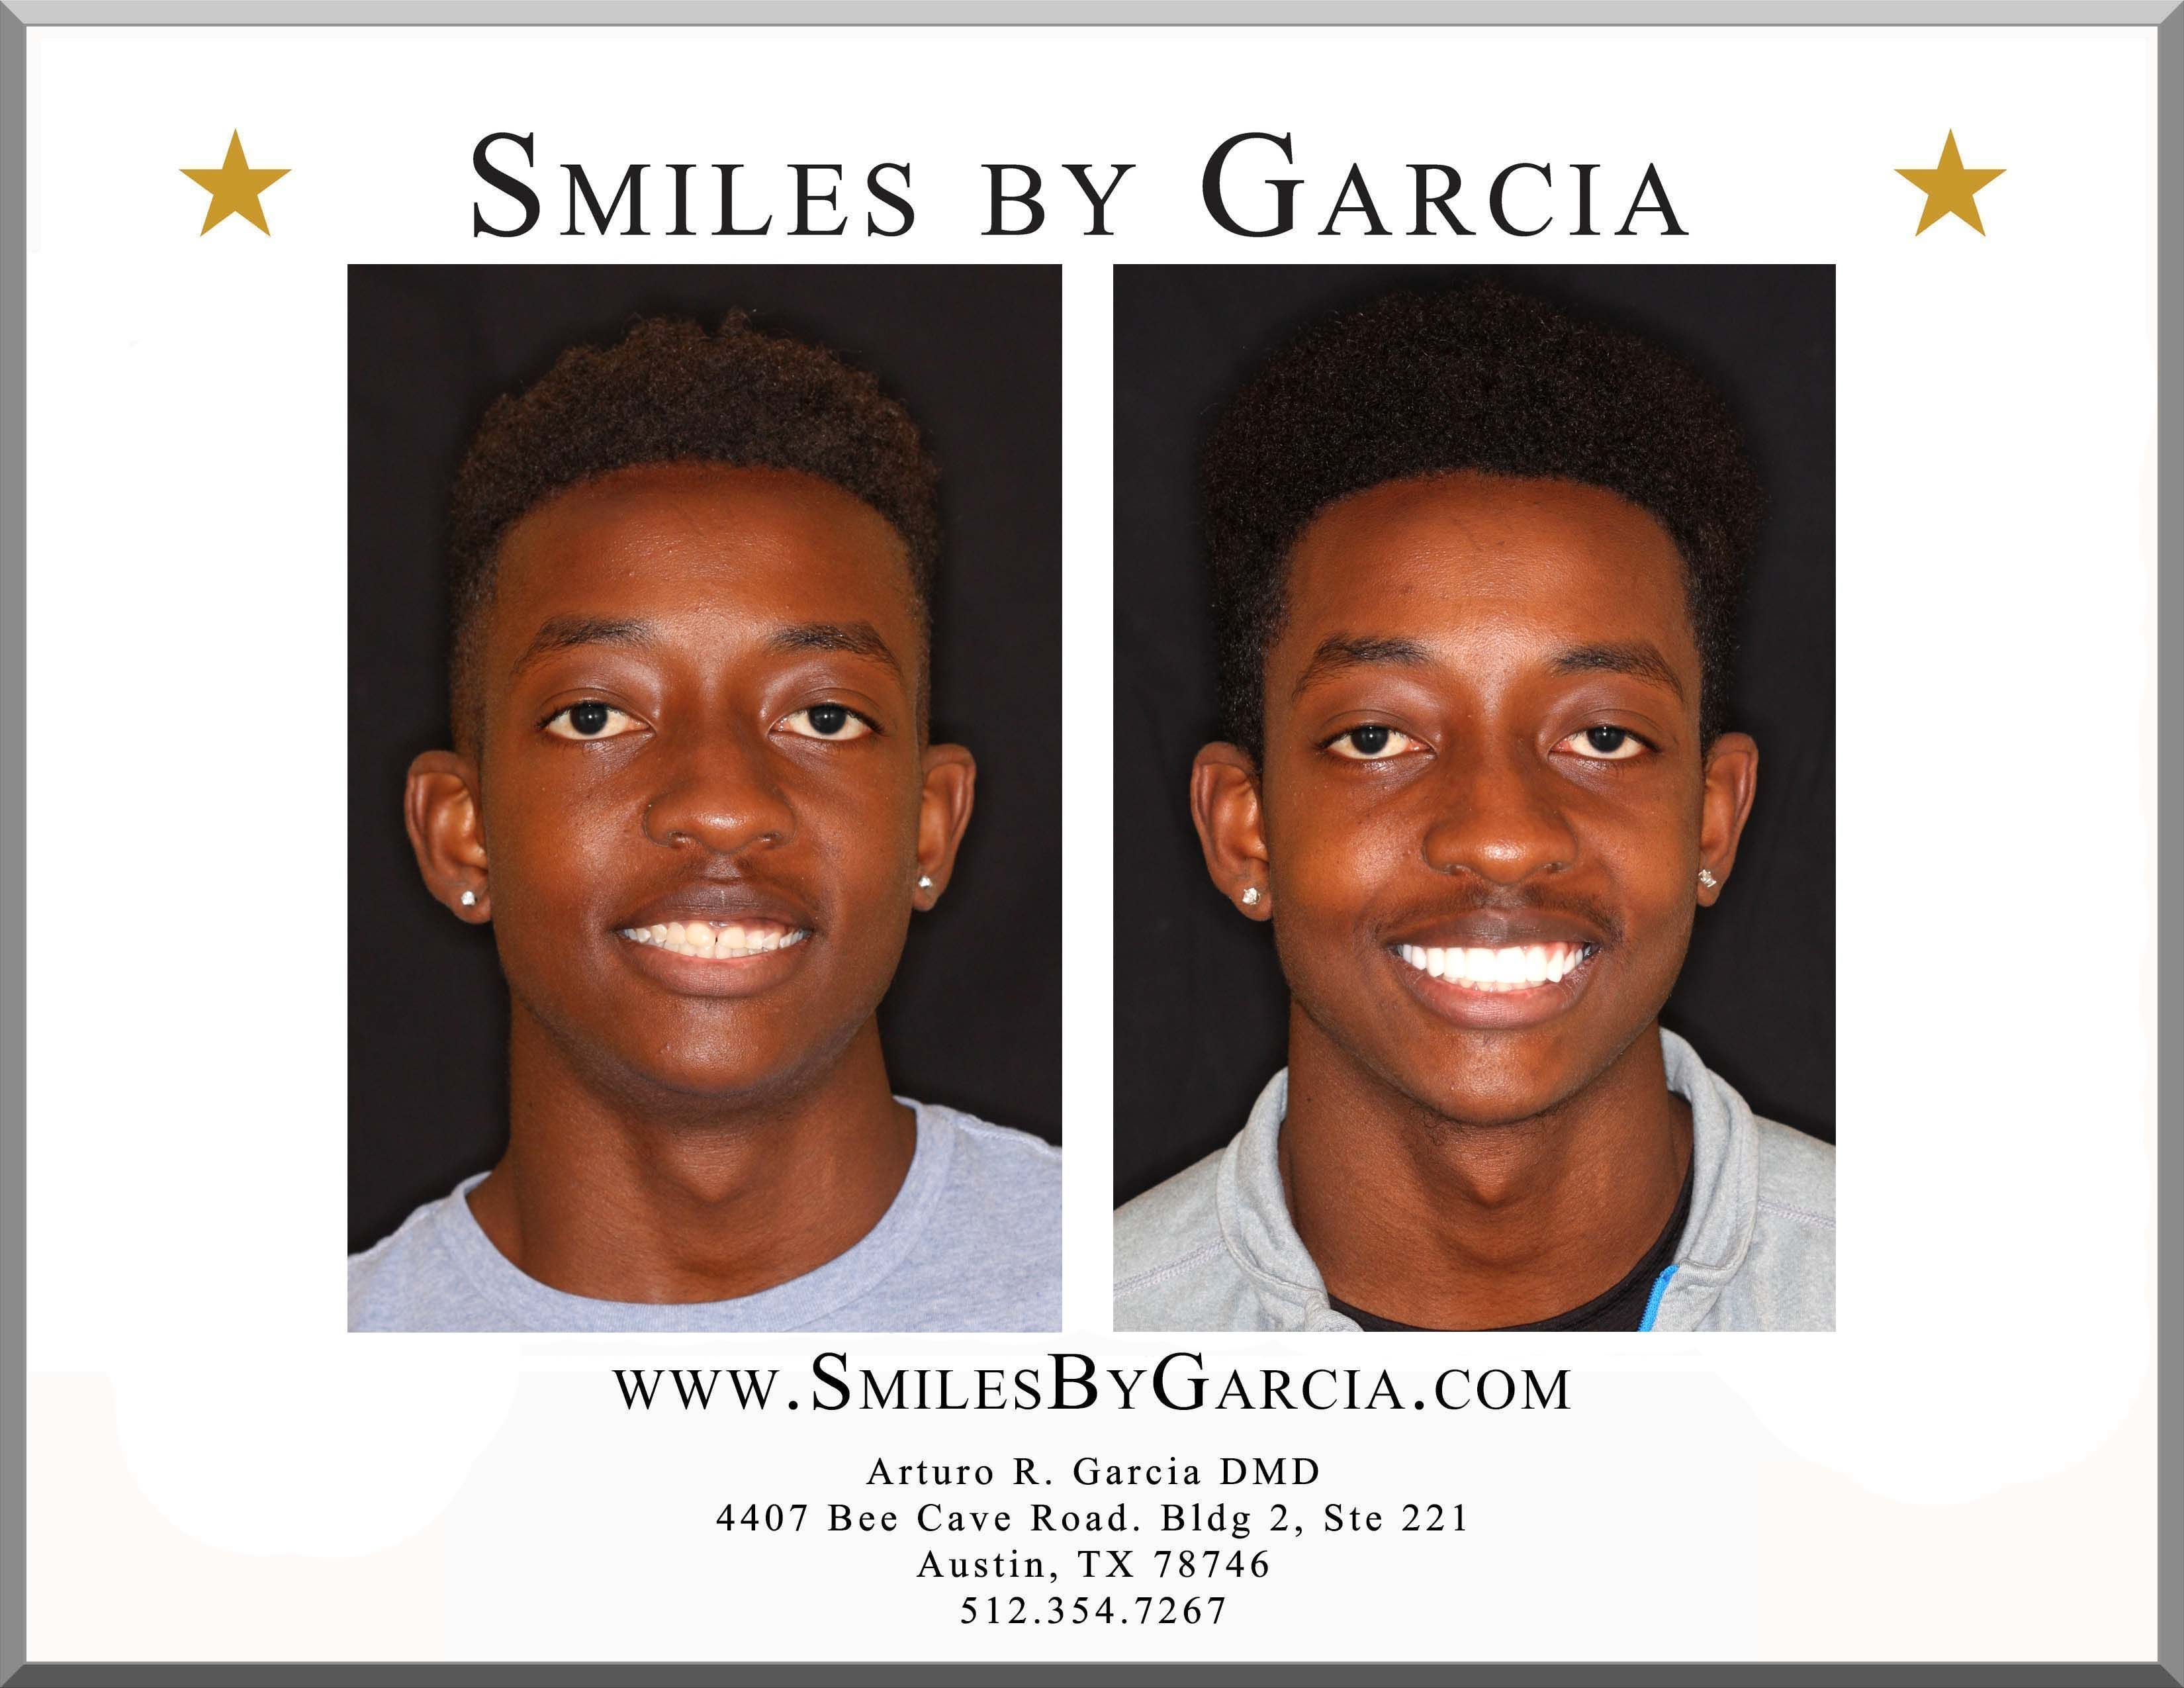 Smiles by garcia cosmetic dentistry is the best cosmetic dentist in